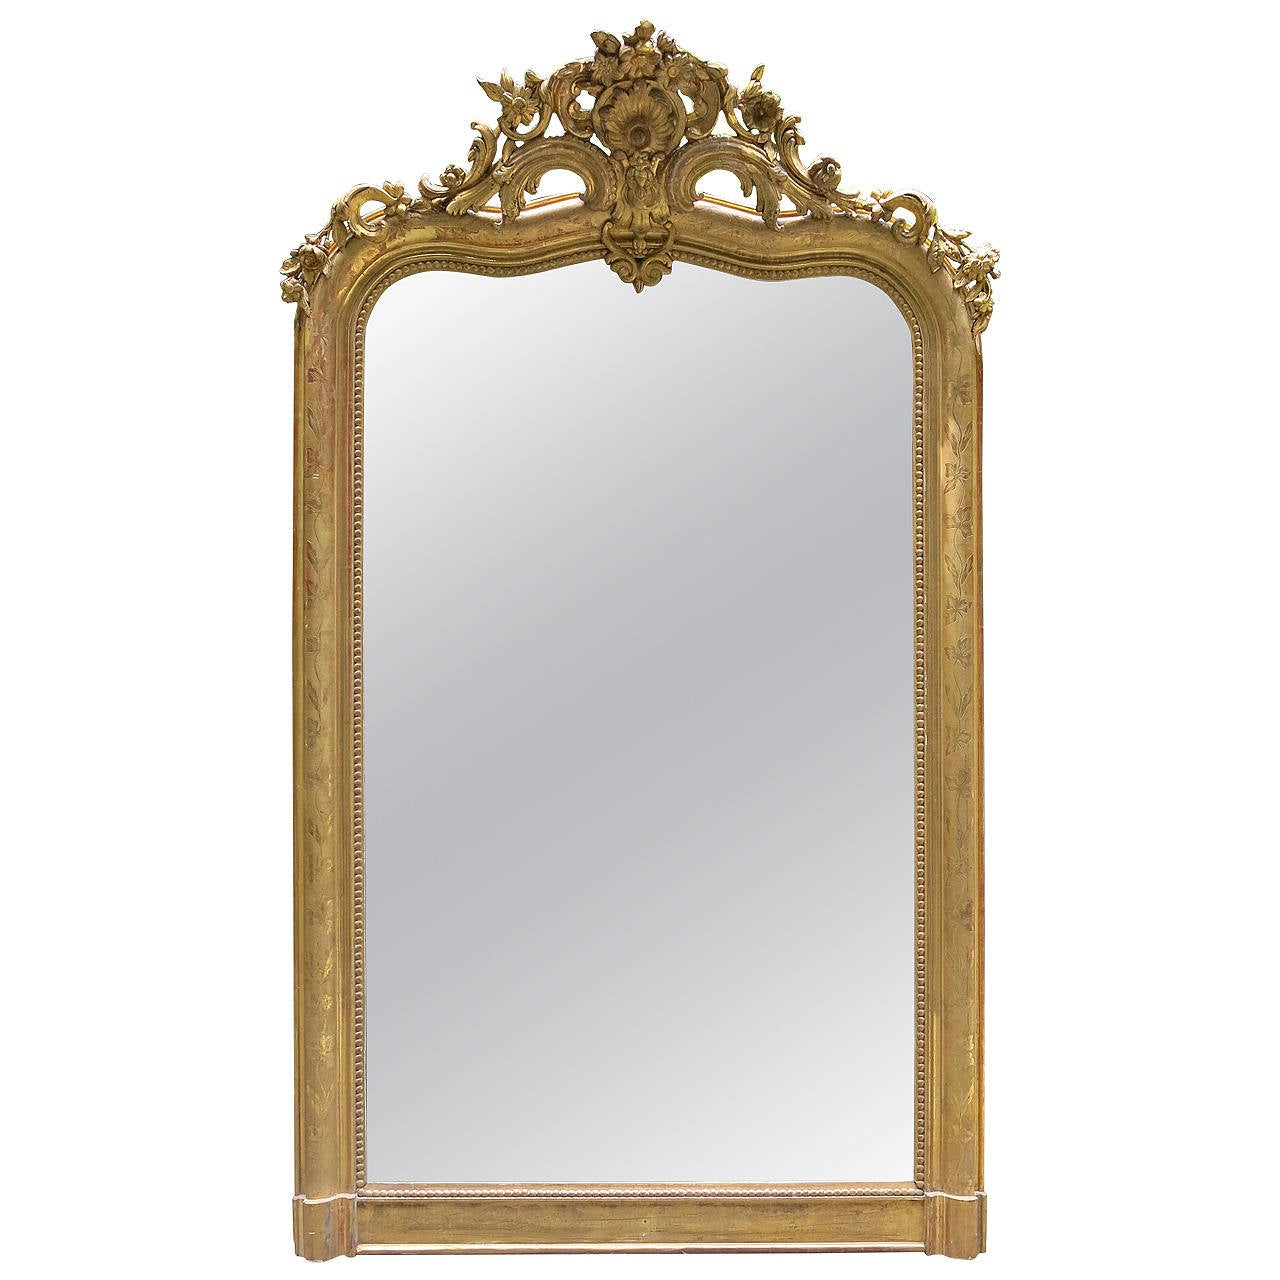 Arched gilt mirror at 1stdibs - 18th Century Louis Xv Gilded Mirror With Cartouche 1